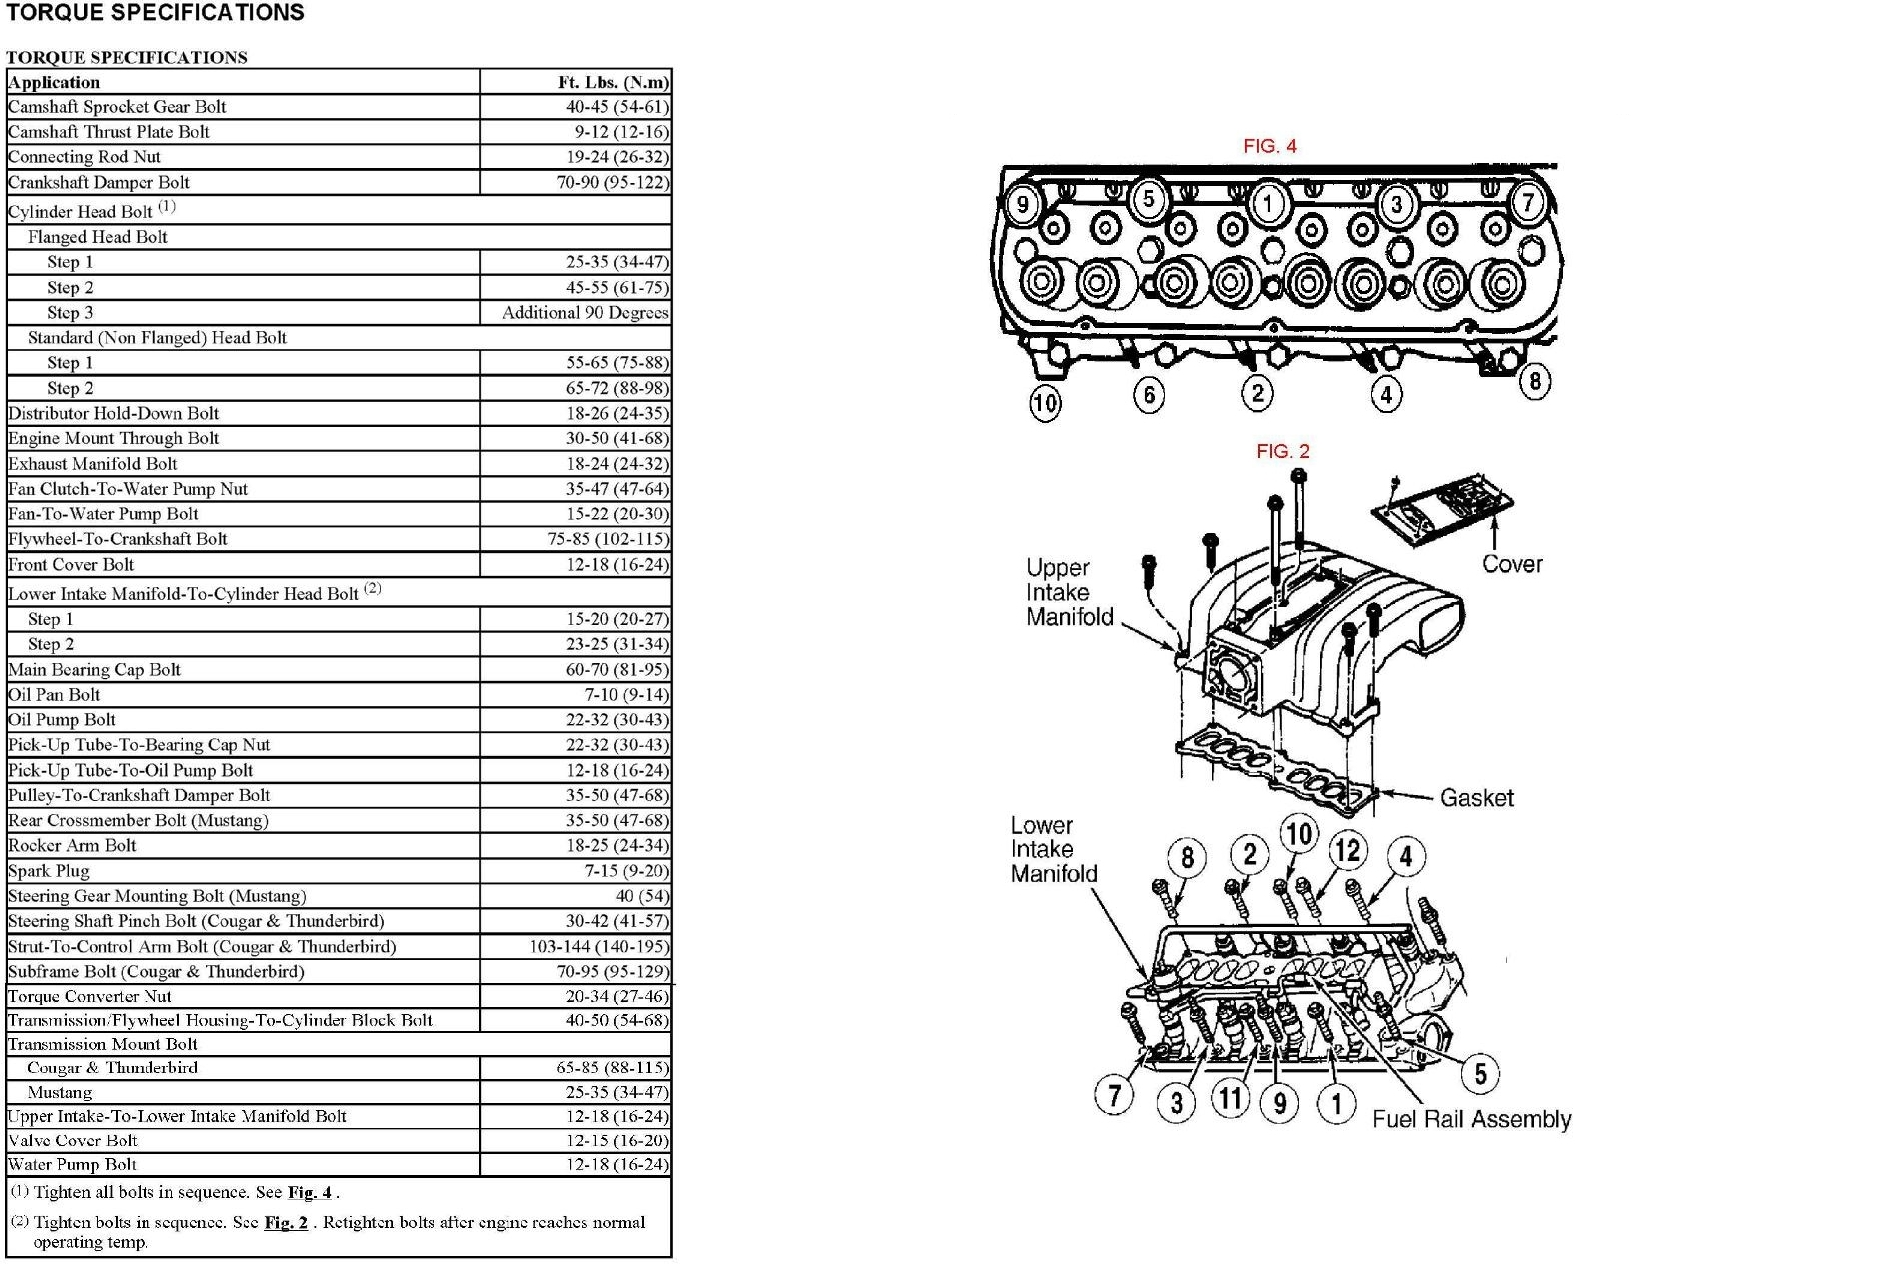 New Ford Pick Up 5 0 Engine in addition 6 2 Sel Engine Wiring Diagram as well Thermostat Location 2009 Chevy Impala in addition 3 1 Liter Transmission Pan Diagram together with 4 3 Vortec Cam Sensor. on knock sensor on ford 302